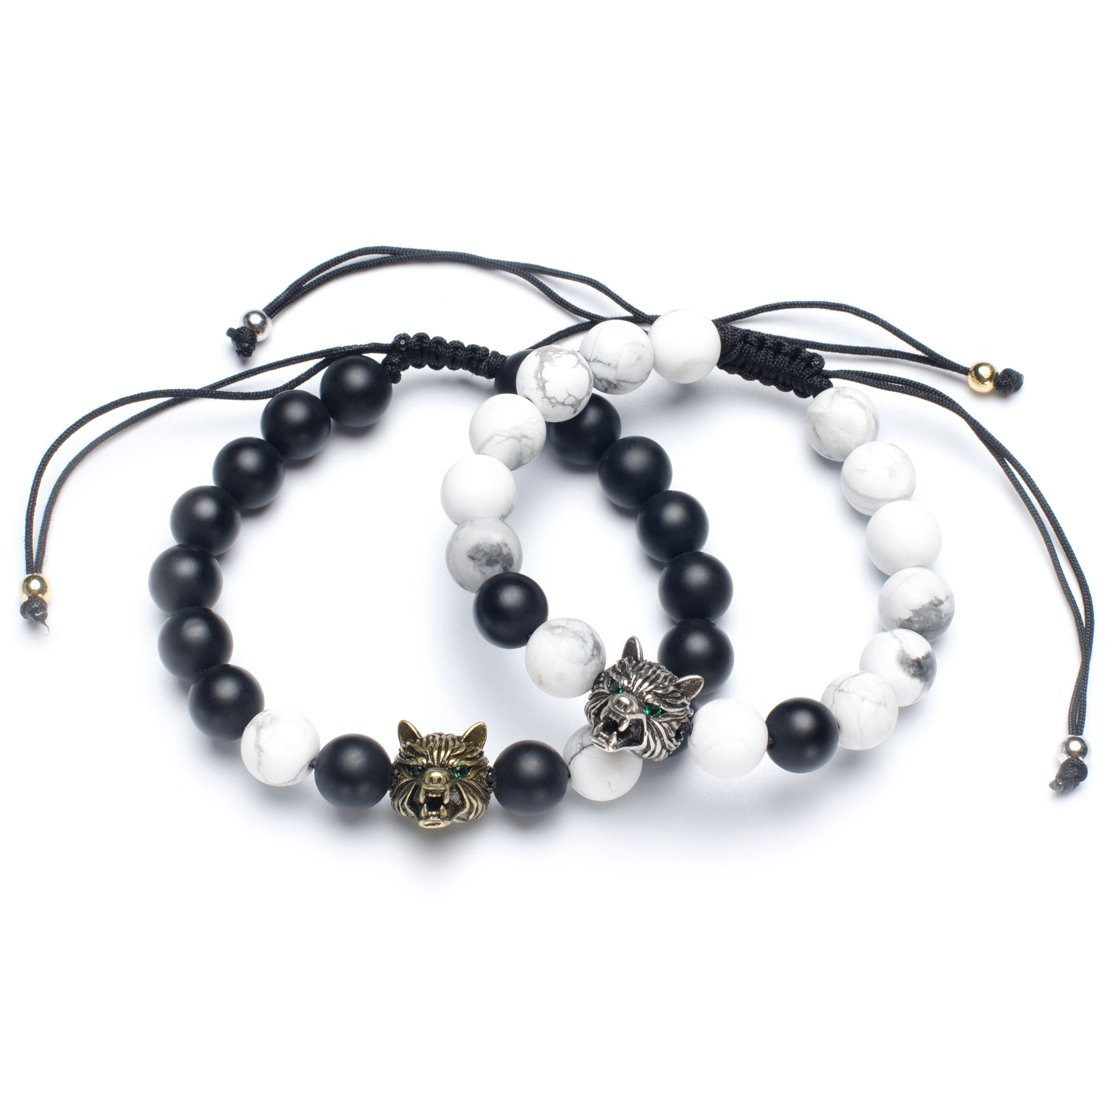 Karseer Yin Yang Matching Distance Bracelet Retro Wolf Head Charm Black Matte Onyx and White Howlite 8mm Stone Beads Bracelets Friendship Relations Bracelet Set for Guys Couples His and Hers